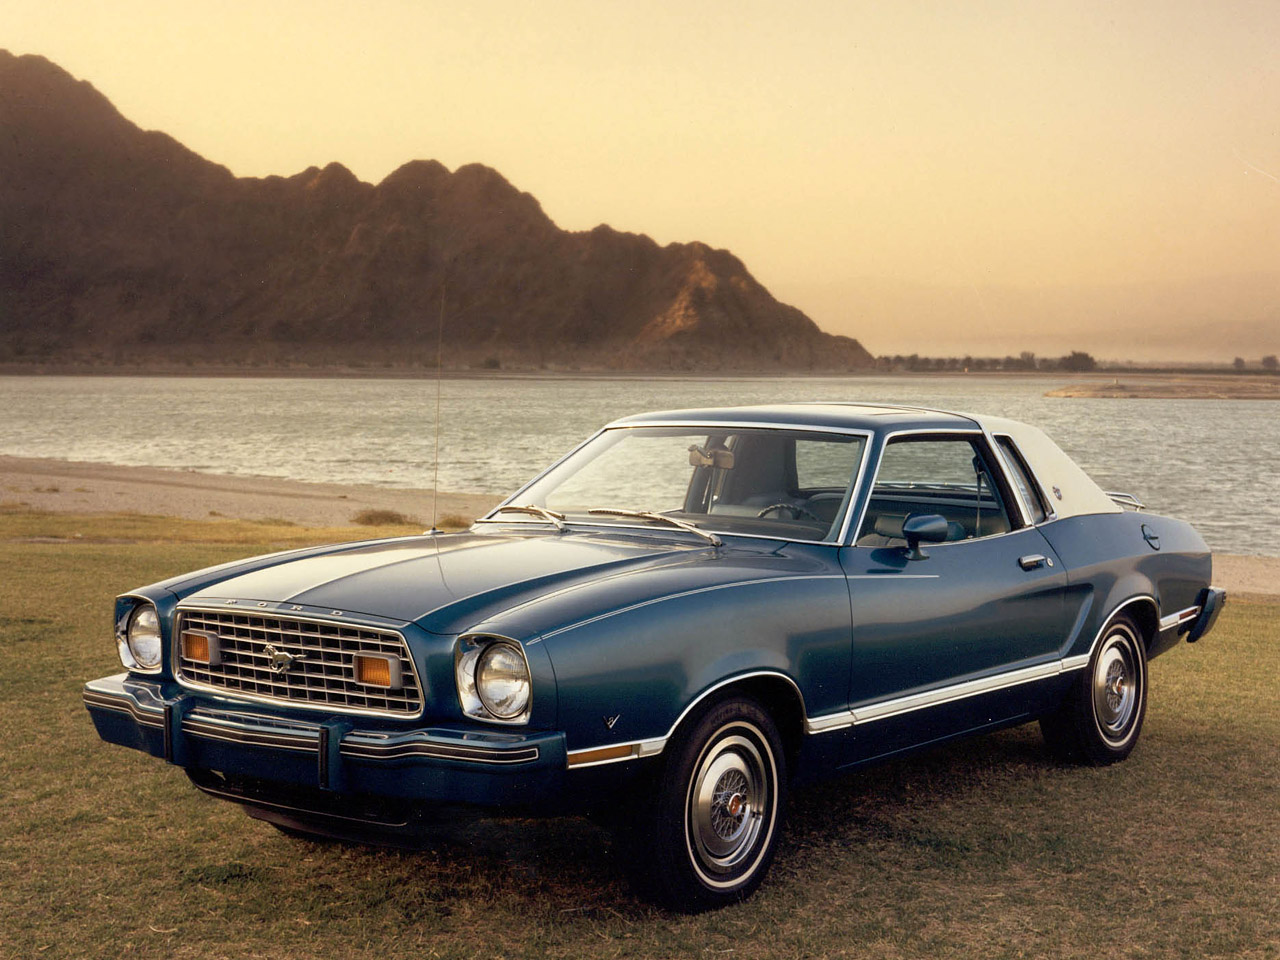 Ford Mustang 1977 photo - 2